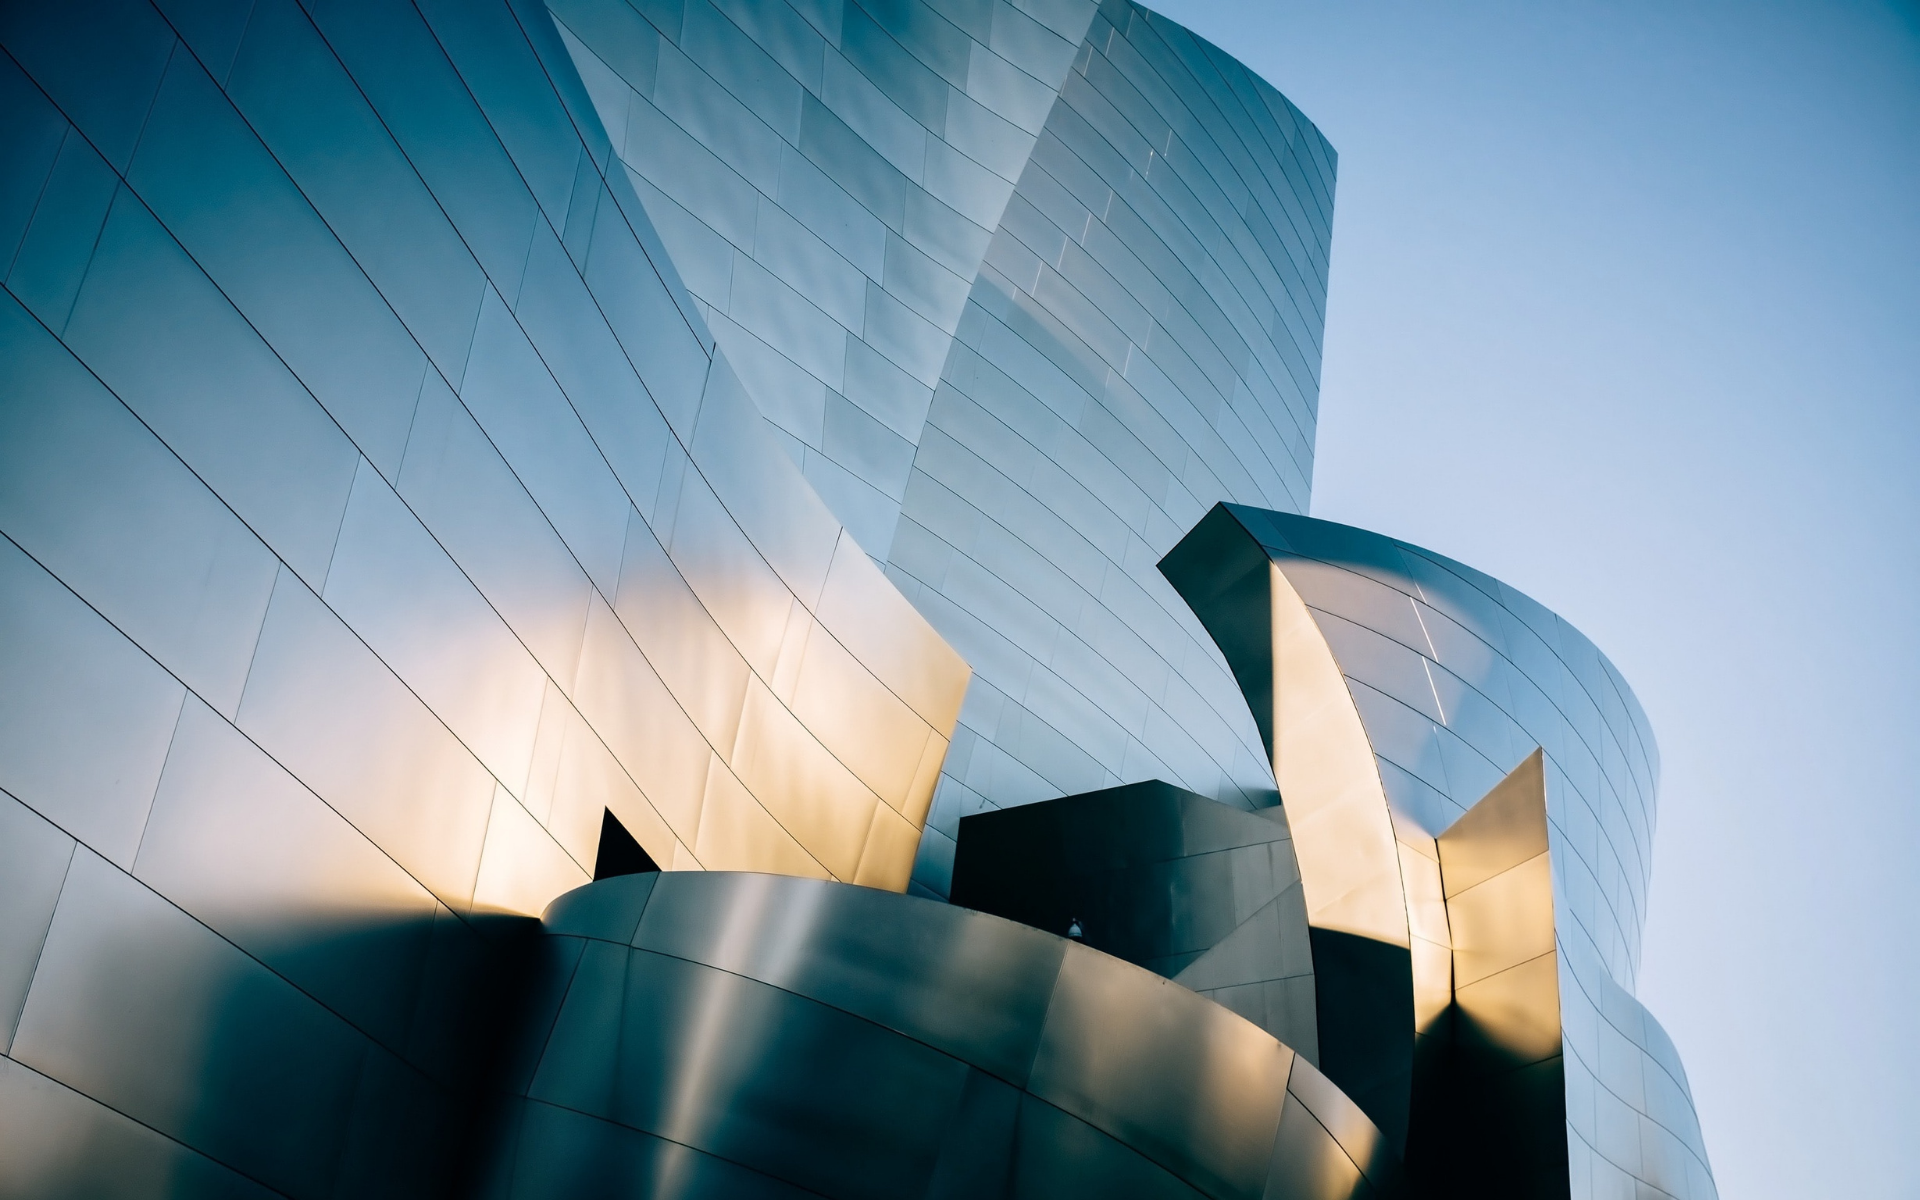 Find out about architect Frank Gehry's process and how he conceived buildings like the spectacular Walt Disney Concert Hall. Image by Unsplash